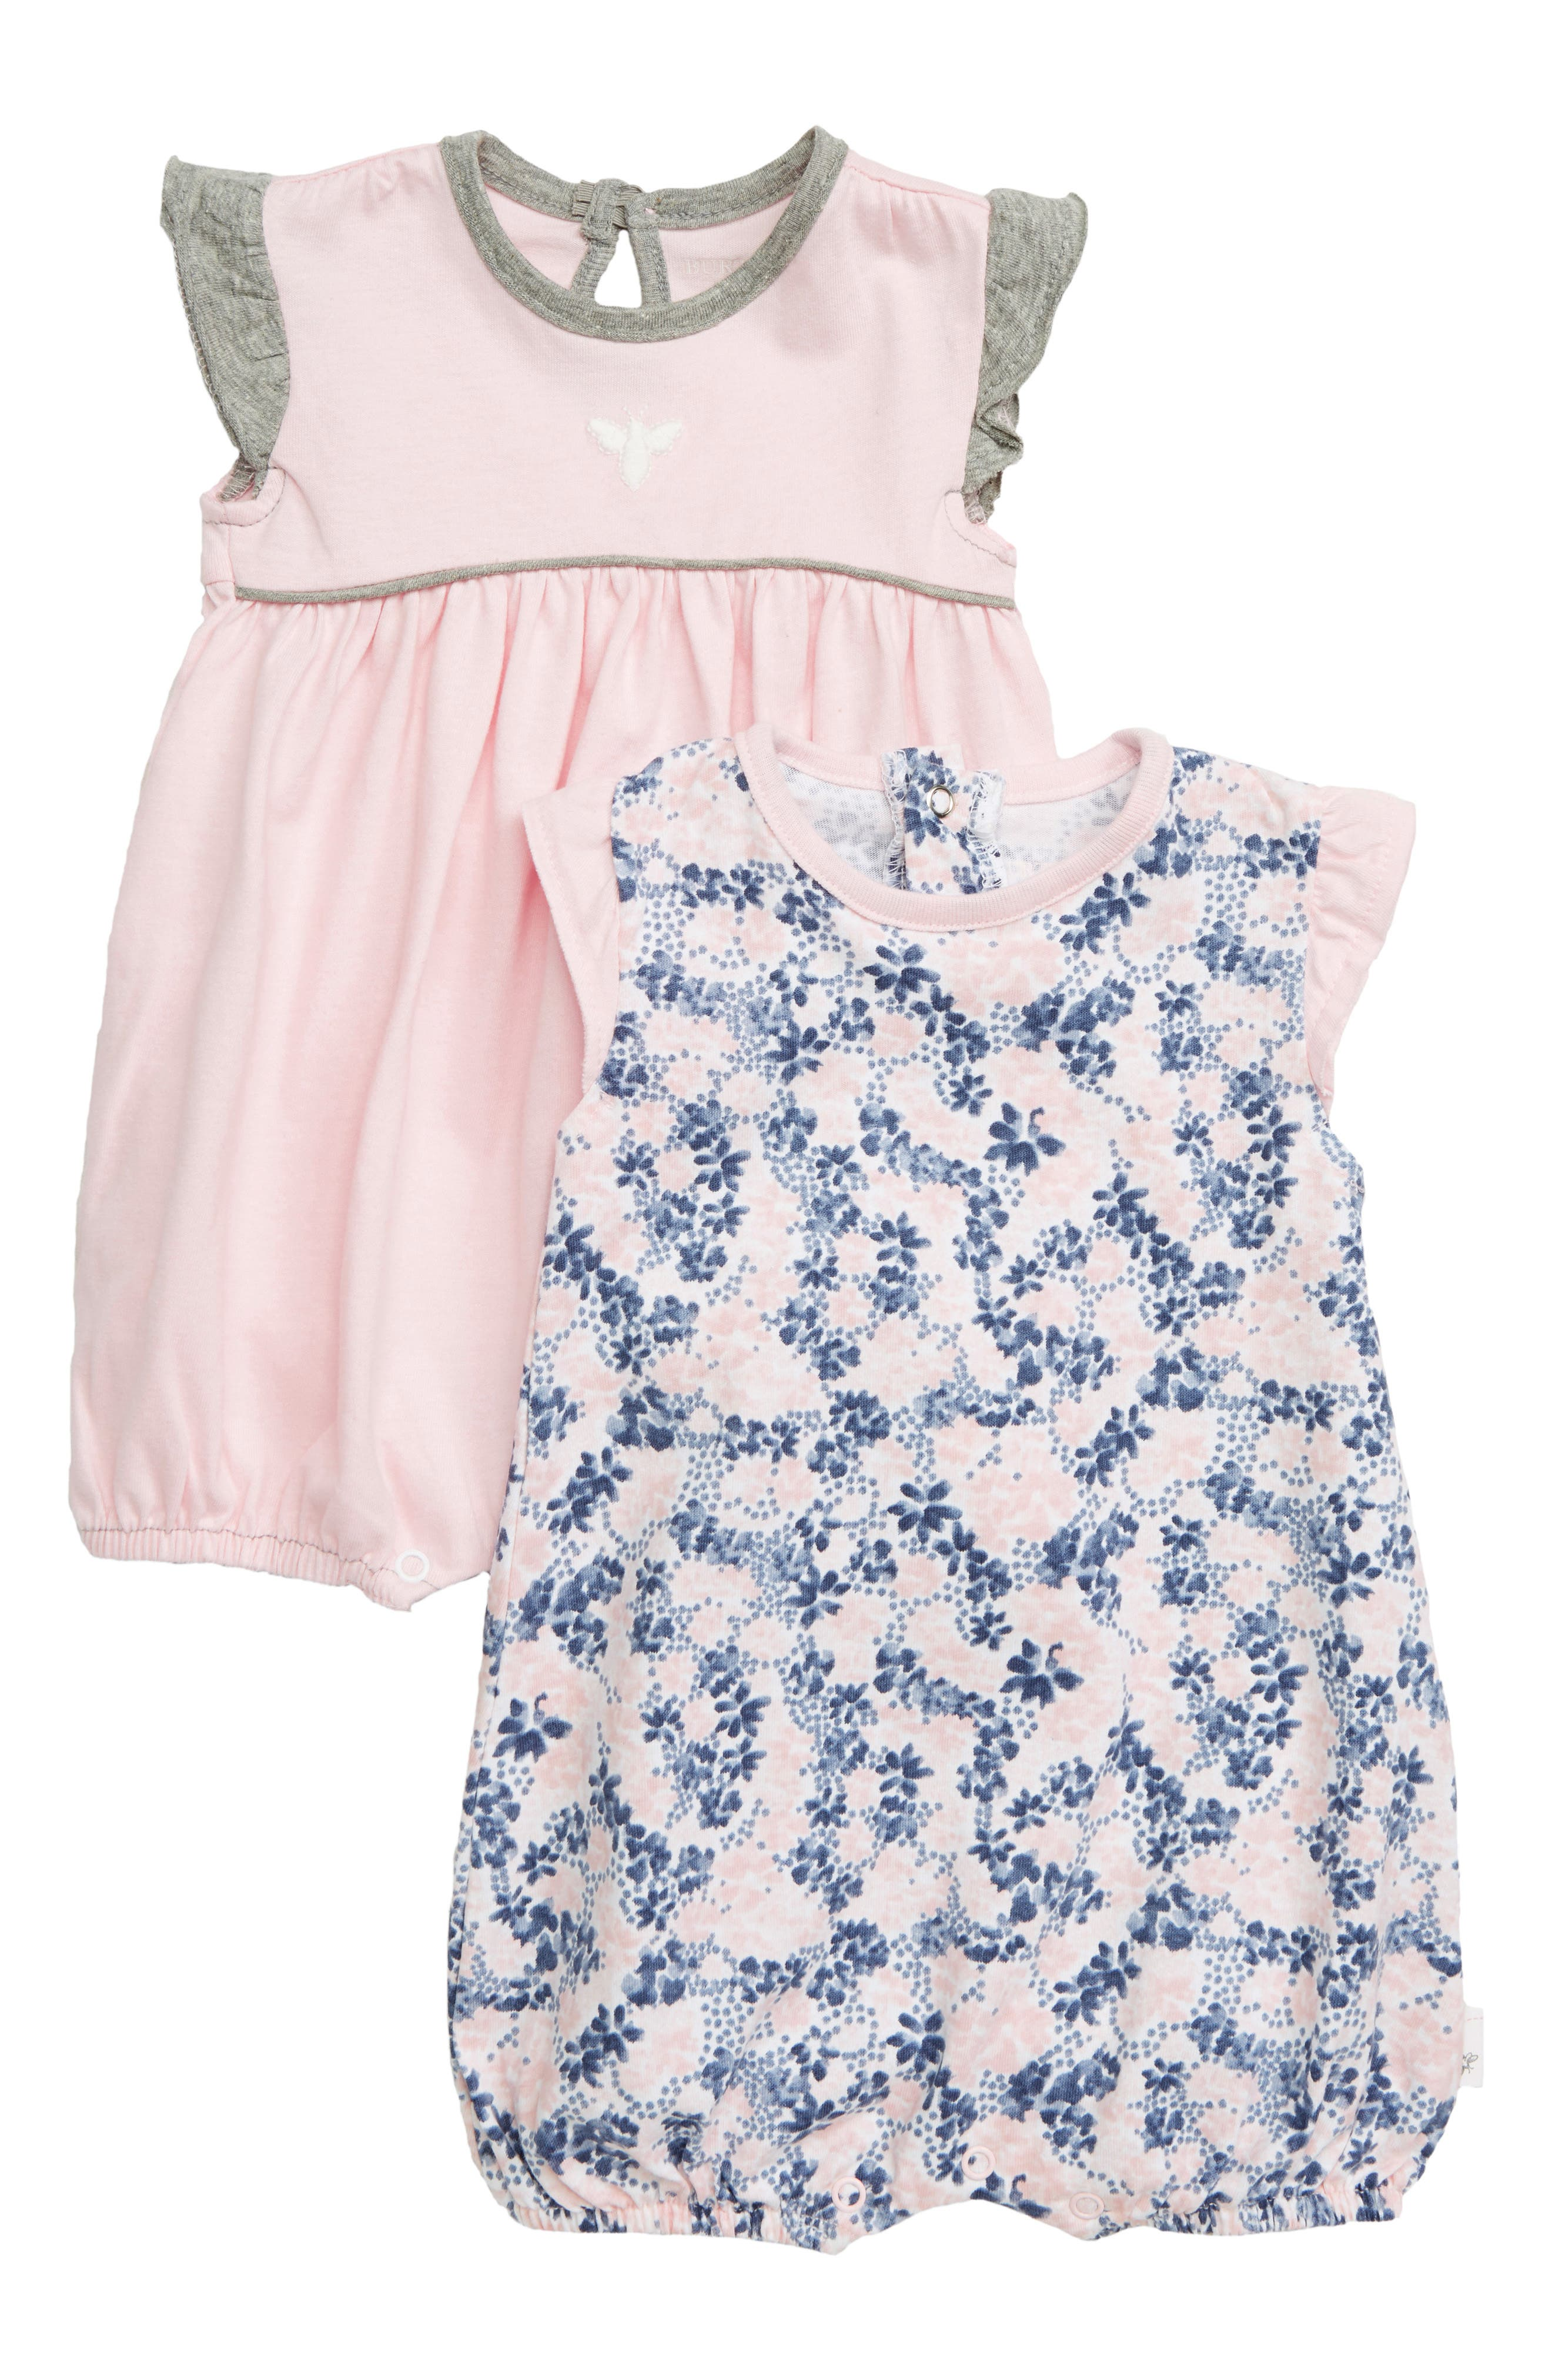 Infant Girls BurtS Bees Baby 2Pack Ditsy Floral Organic Cotton Bubble Rompers Size 36M  Pink